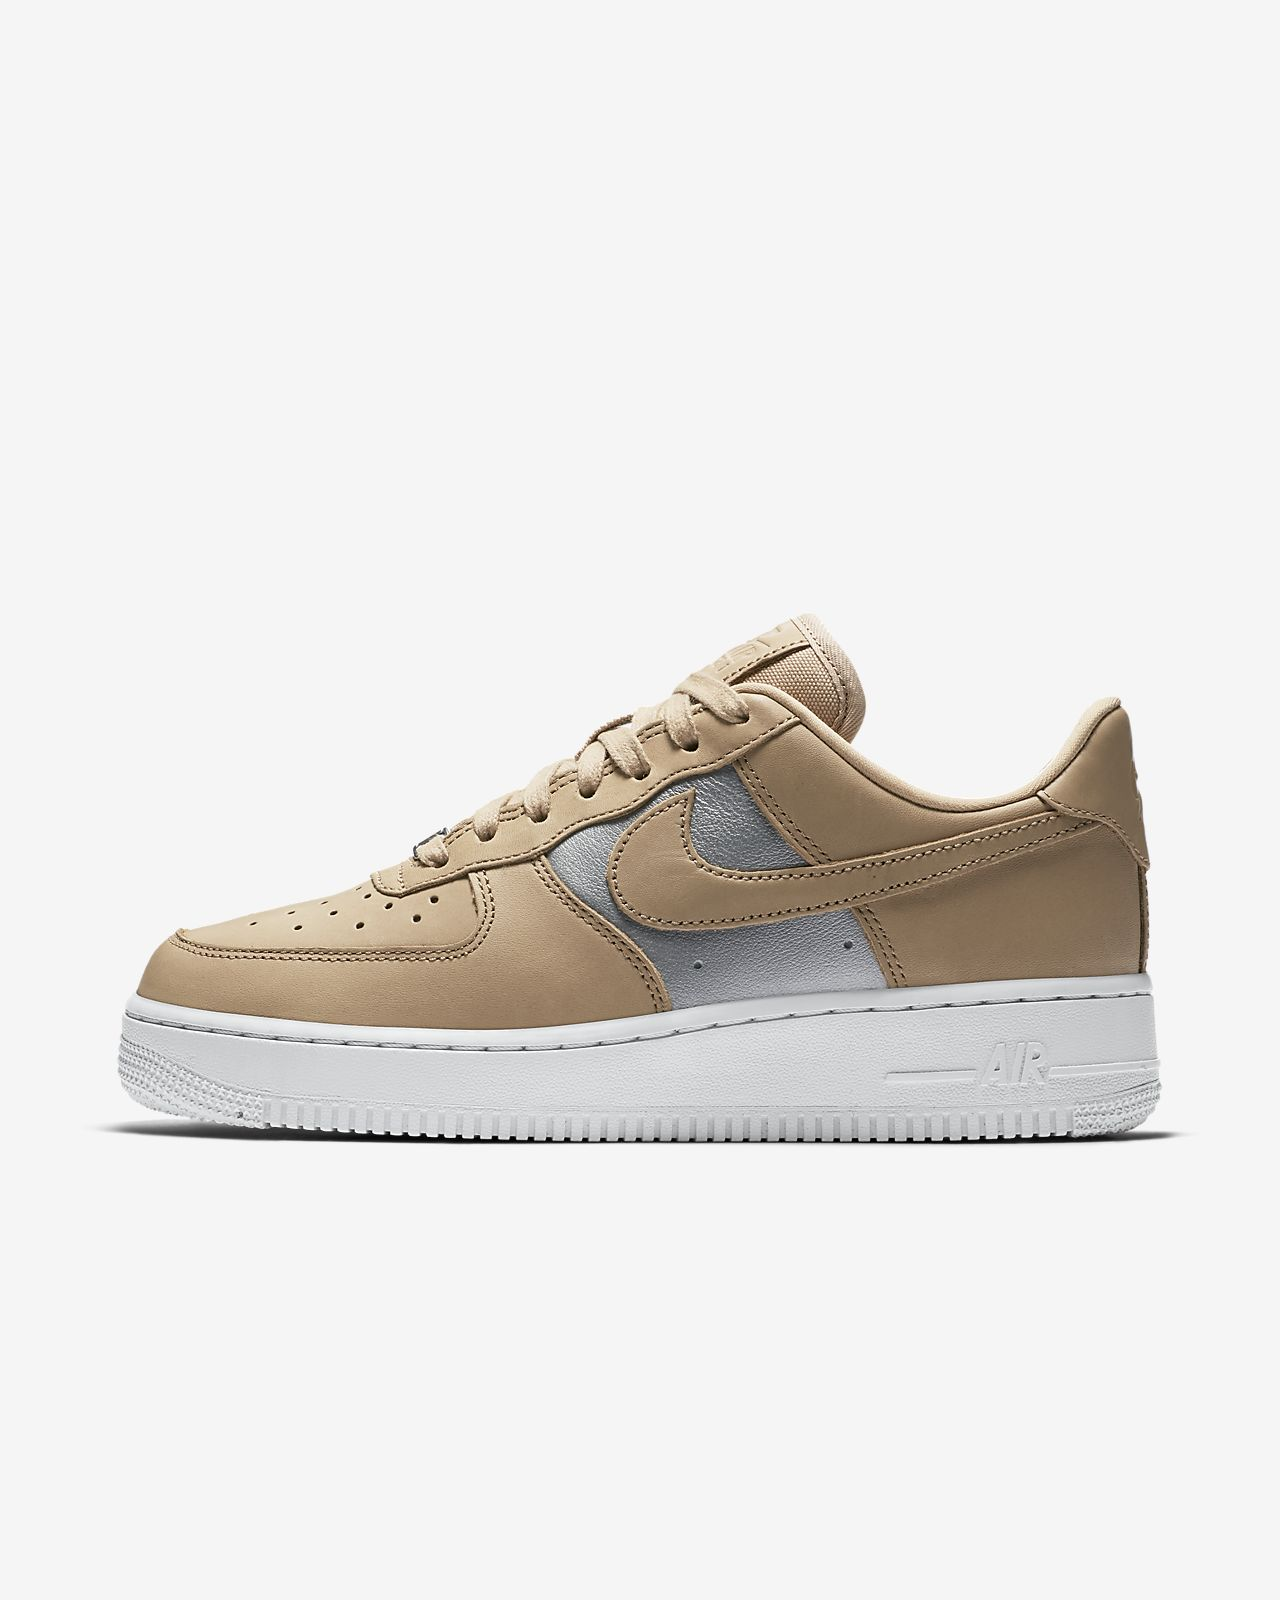 Nike Air Force 1 '07 SE Premium Wmns Bio Beige/ Metallic Silver